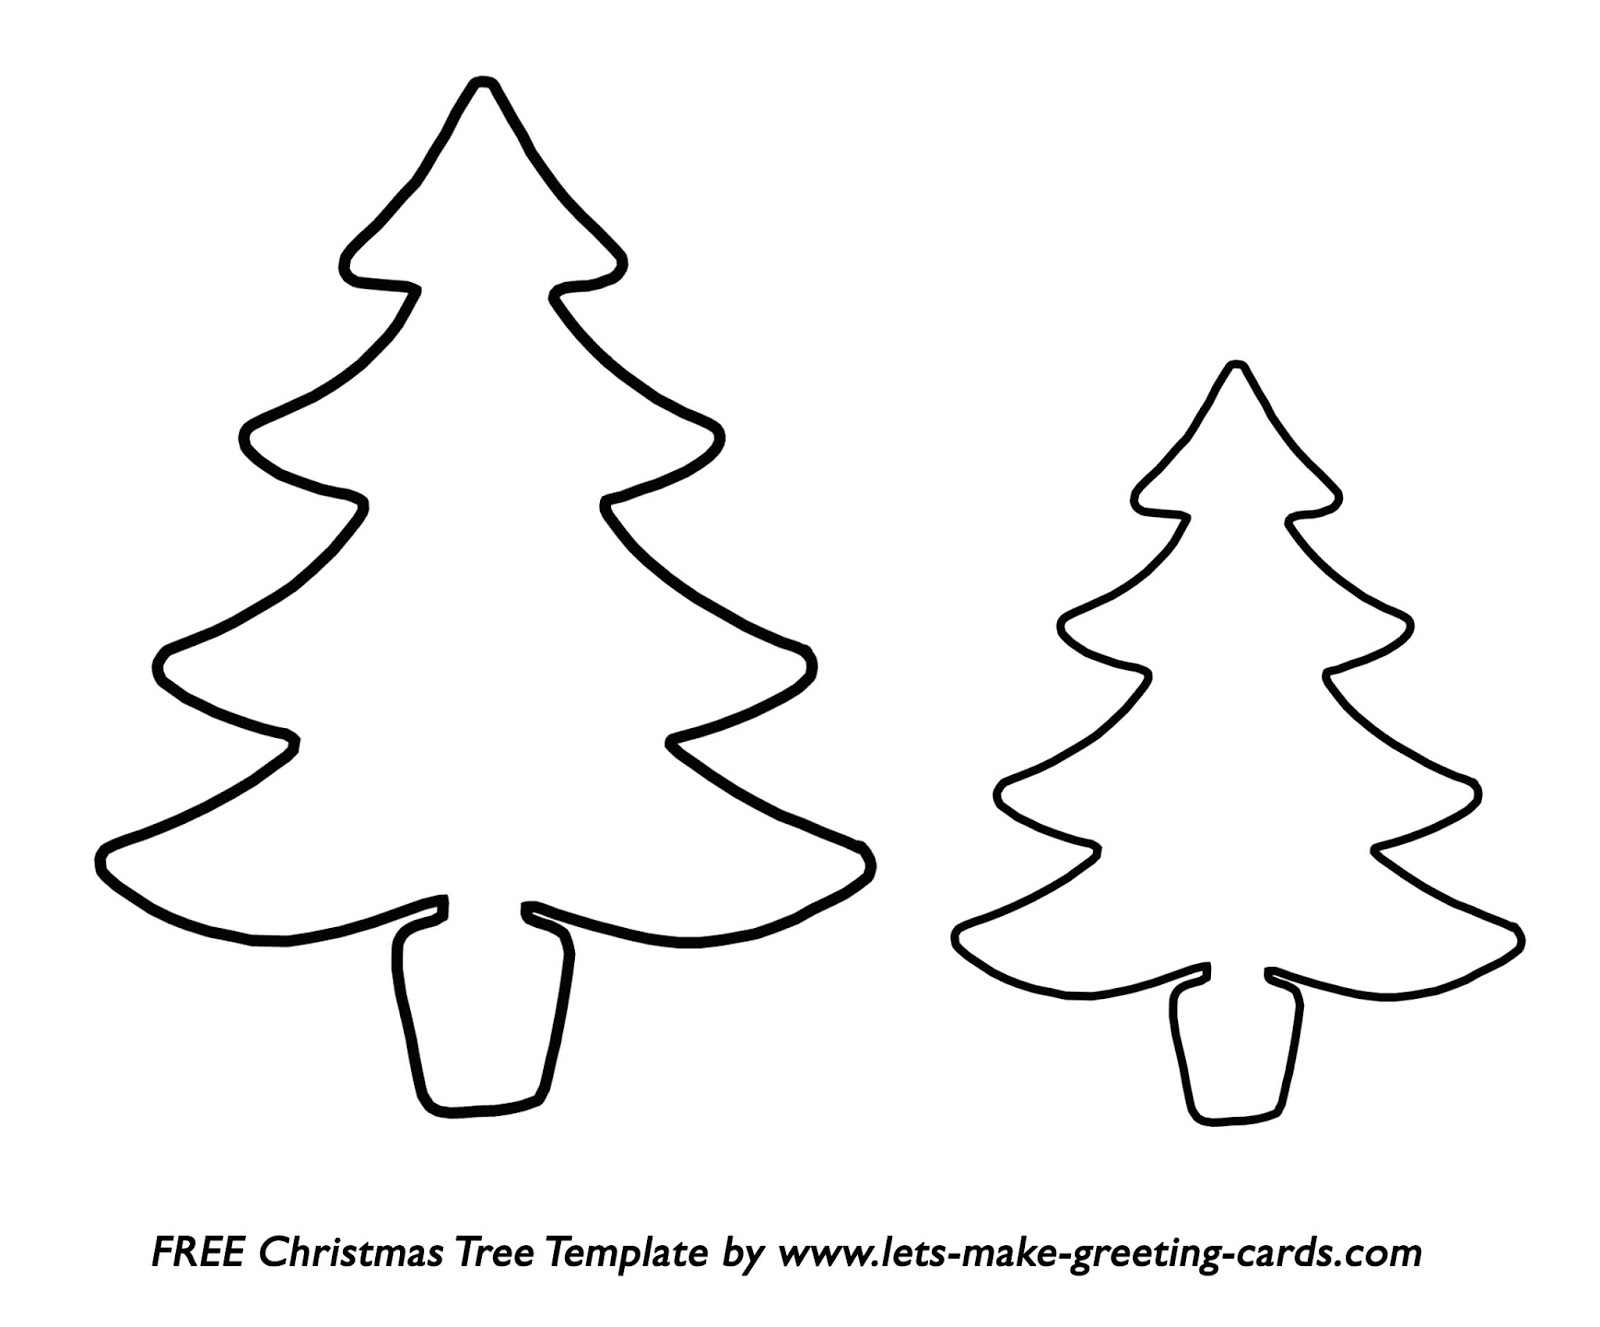 Vibrant image with christmas tree outline printable